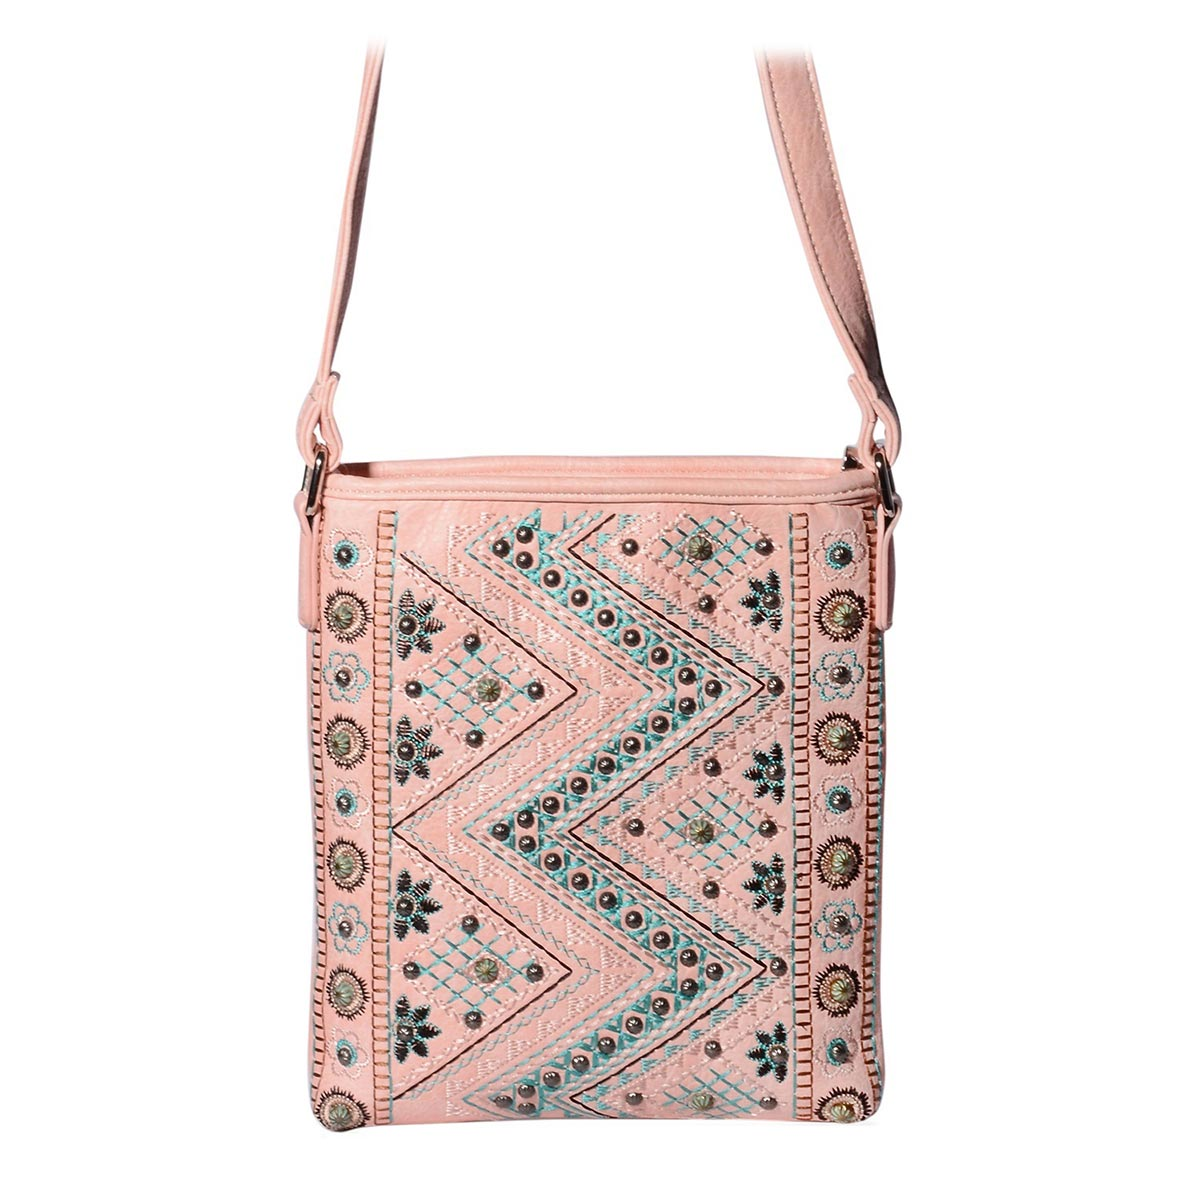 P G COLLECTION Pink Vegan Leather Embroidered Tribal Print Southwest  Messenger Crossbody Bag (10.5x8. 7c9e04febc505